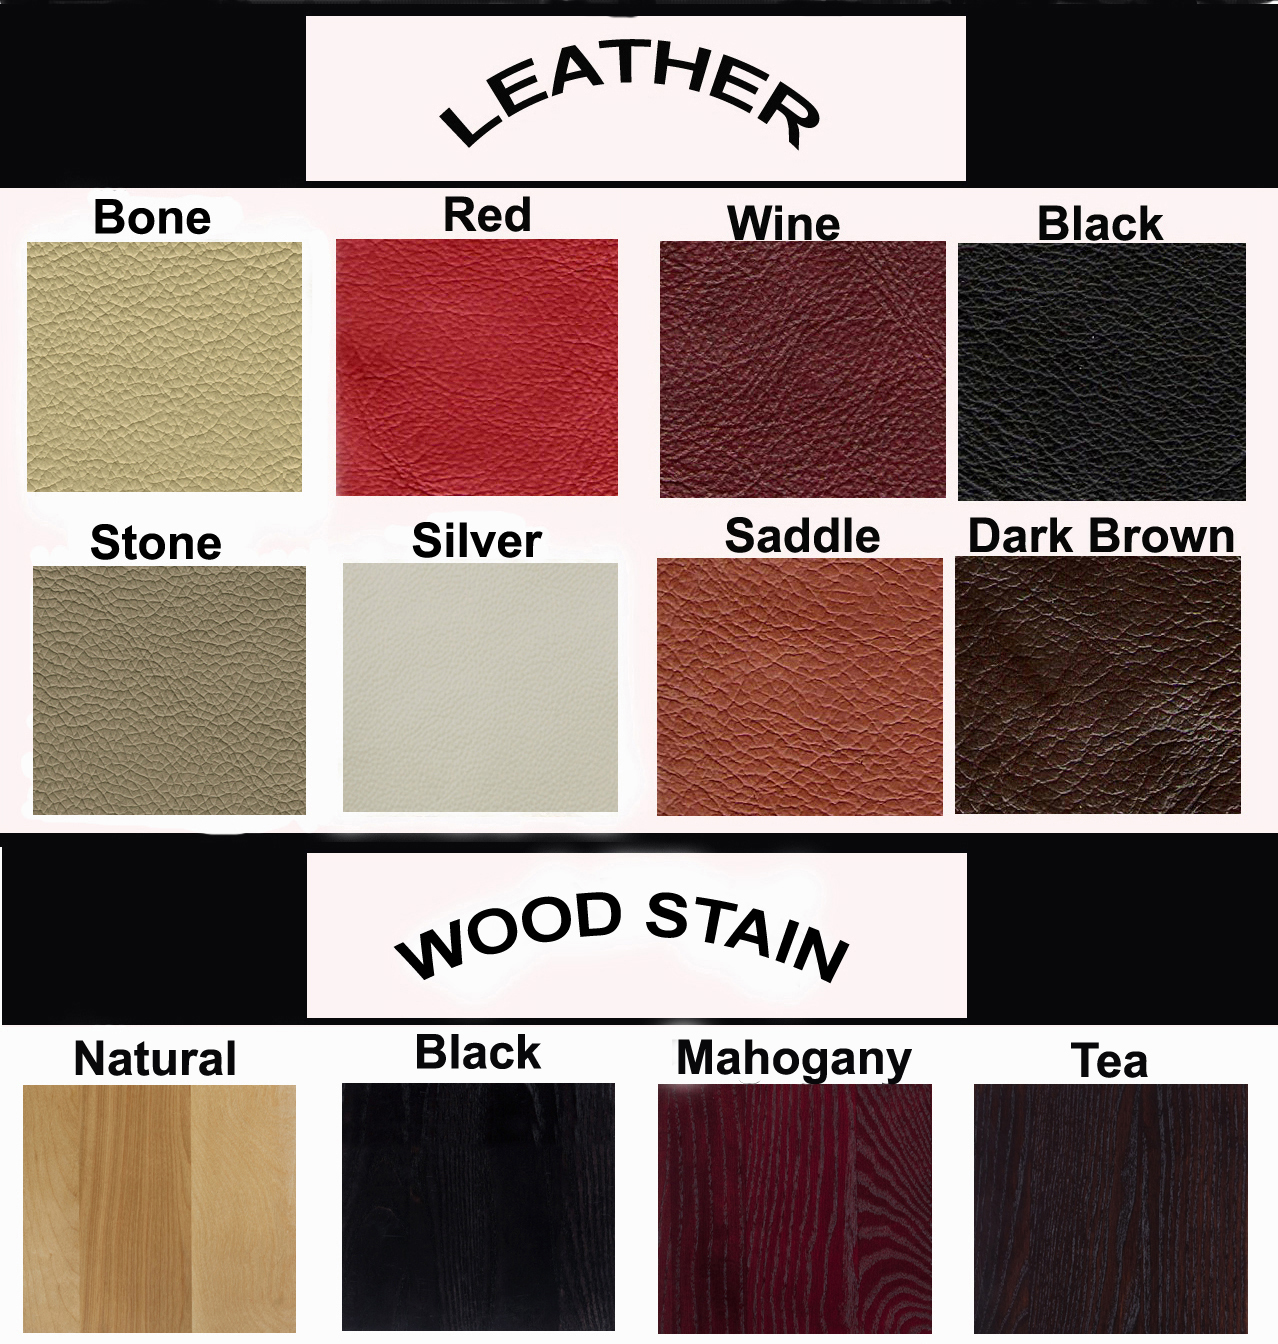 CLICK HERE To View Leather And Wood Stain Colors